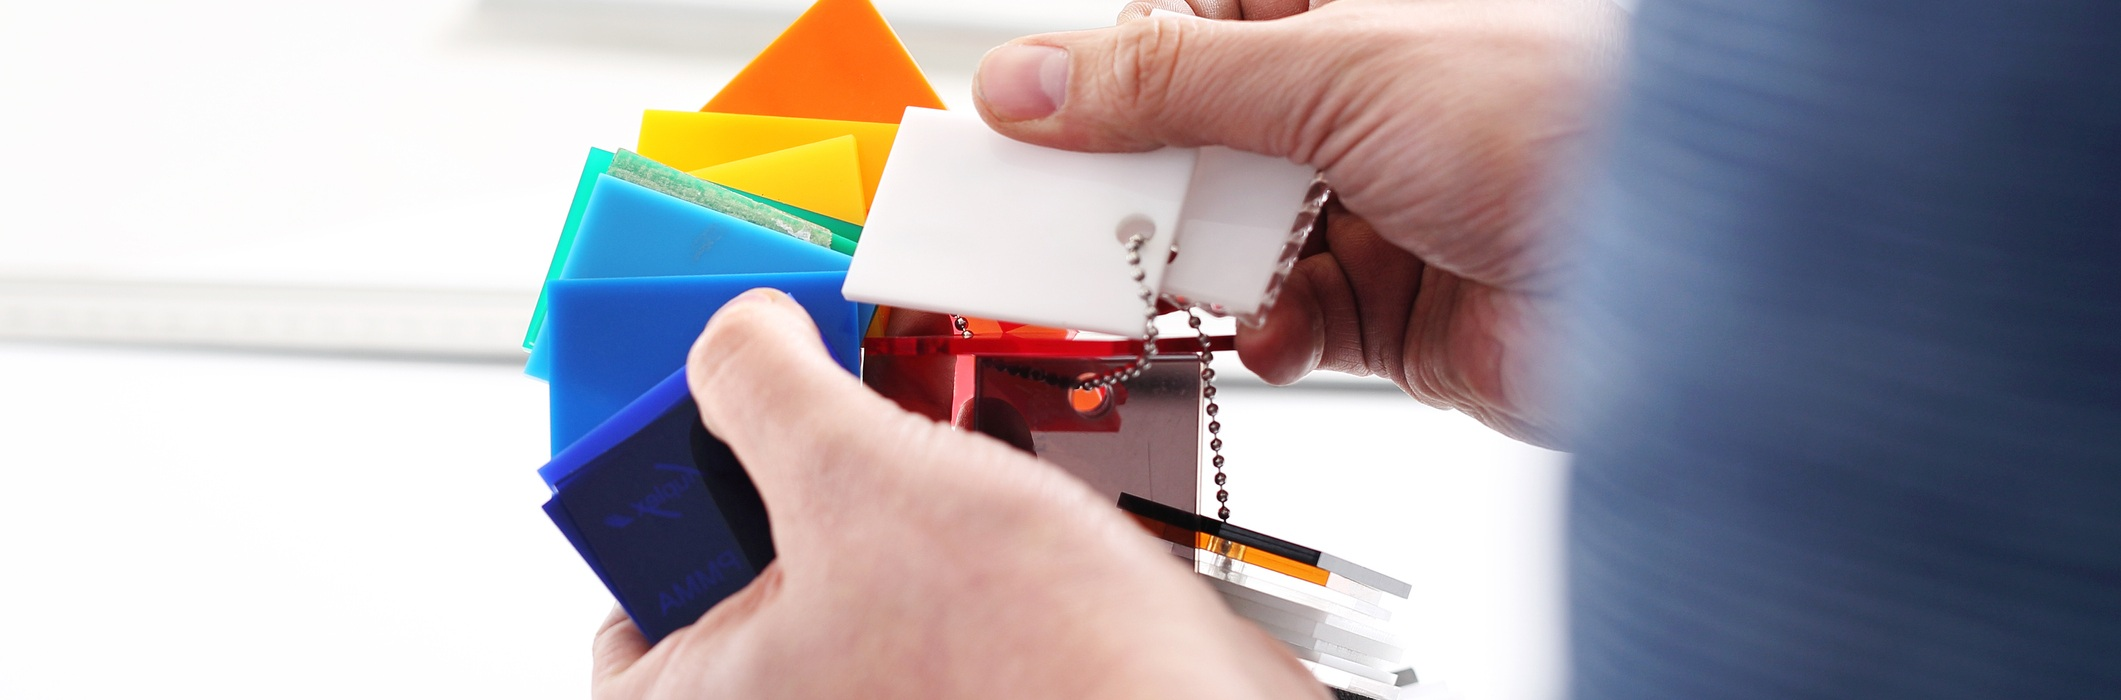 PERSPEX CUTTING & ENGRAVING - At Laser Engraving Services we are able to laser cut & engrave acrylic sheets and other plastic products up to 12mm in thickness. We are able to produce a clean, high quality finish cut with precision.